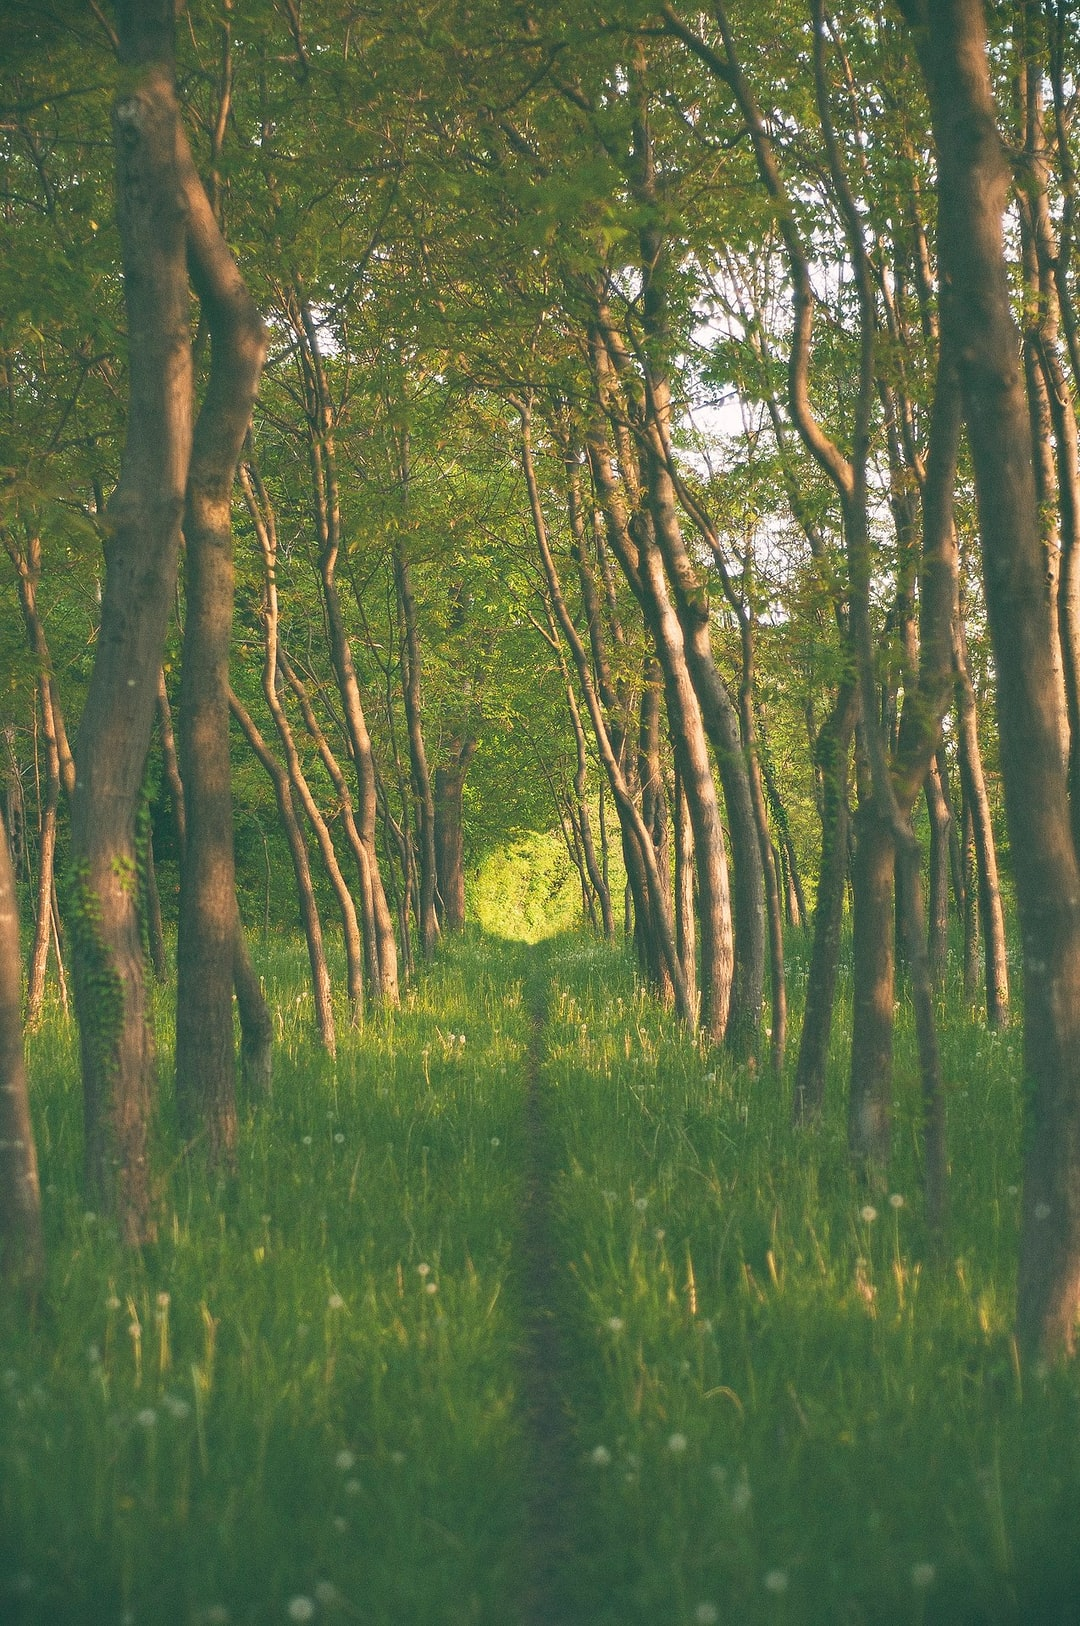 A grassy trail through a grove on a sunny day